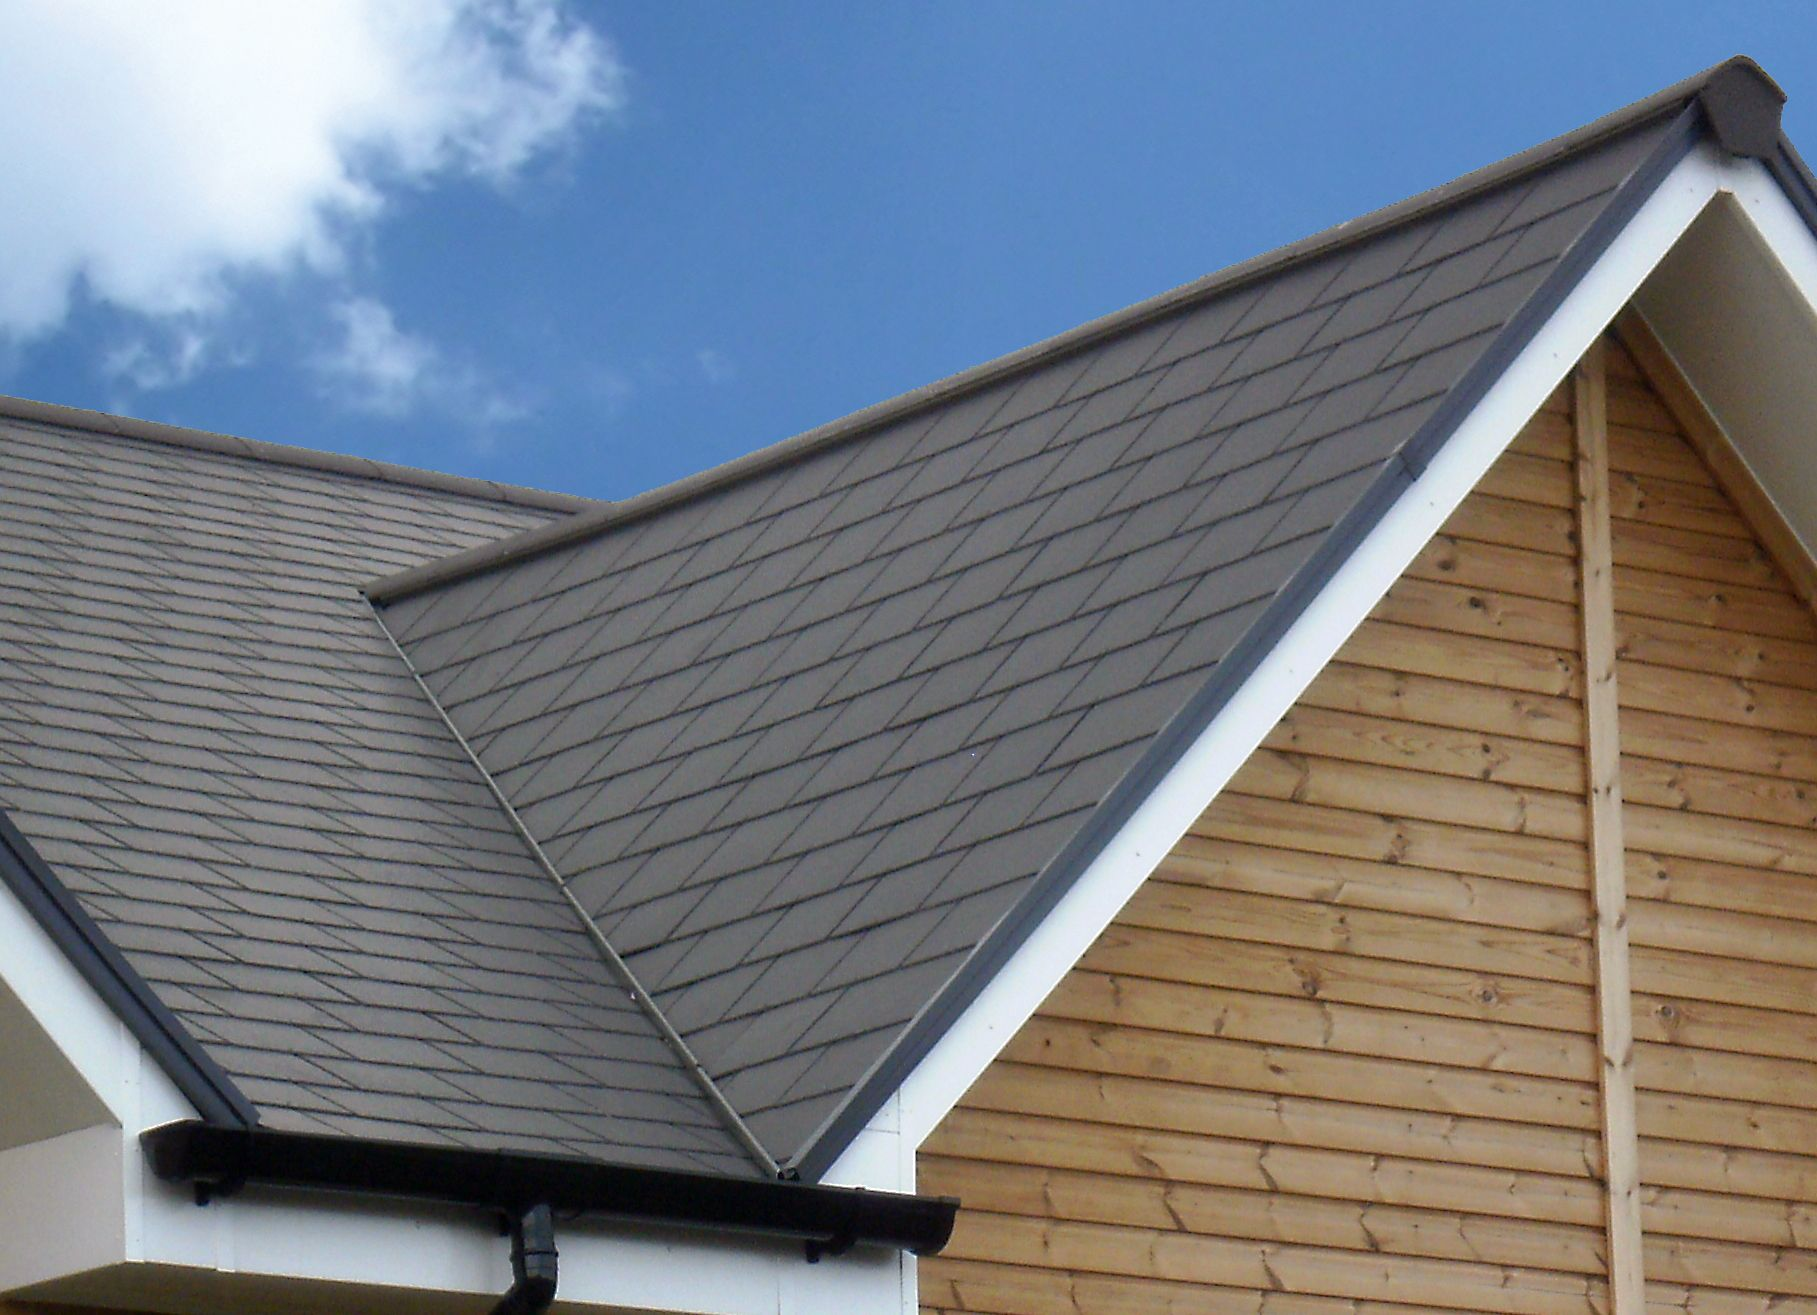 Quality roofing job begins before the shingles go on home remodeling - Roofing Roofing Contractors Roofing Services Quality Roofers When It Comes To Local Roofing There Is Nothing Better Than What These Services Have Too